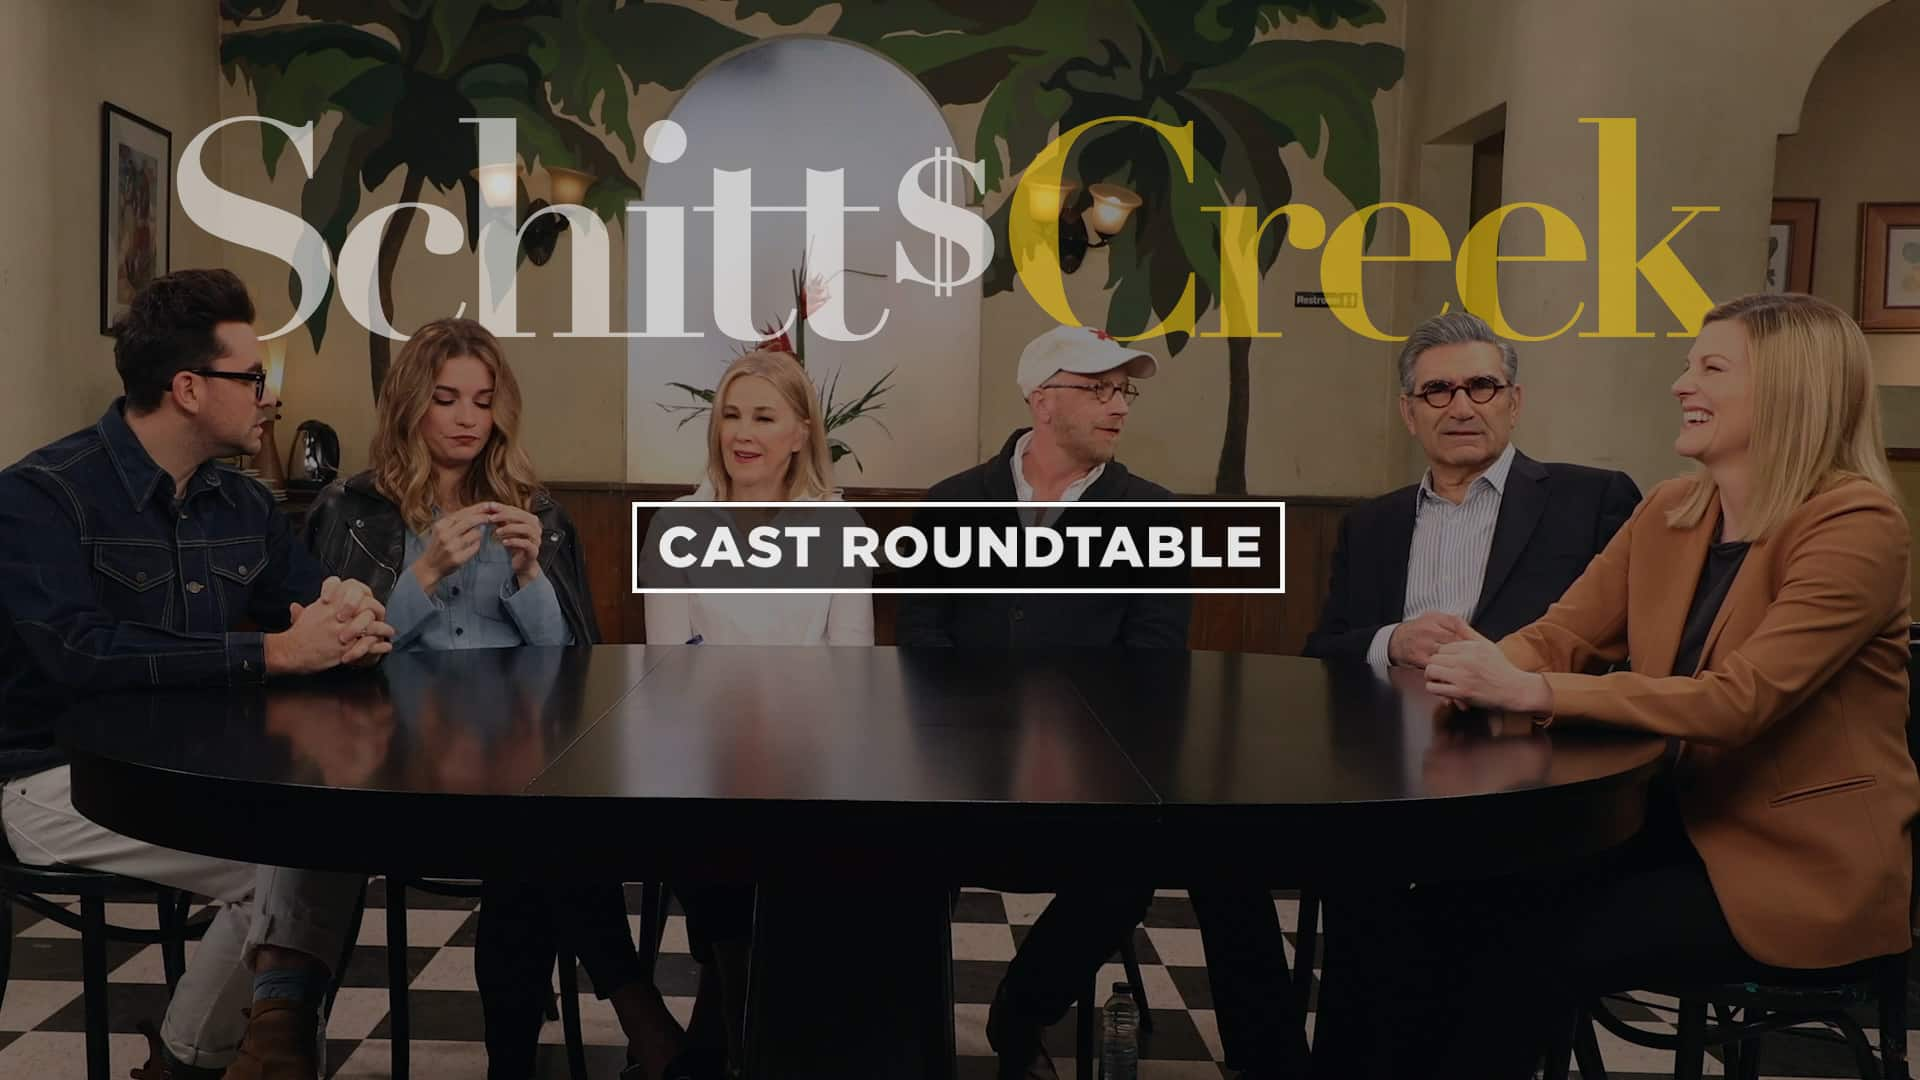 Cast Roundtable | Eugene, Catherine, Dan, Annie, Chris and Jenn